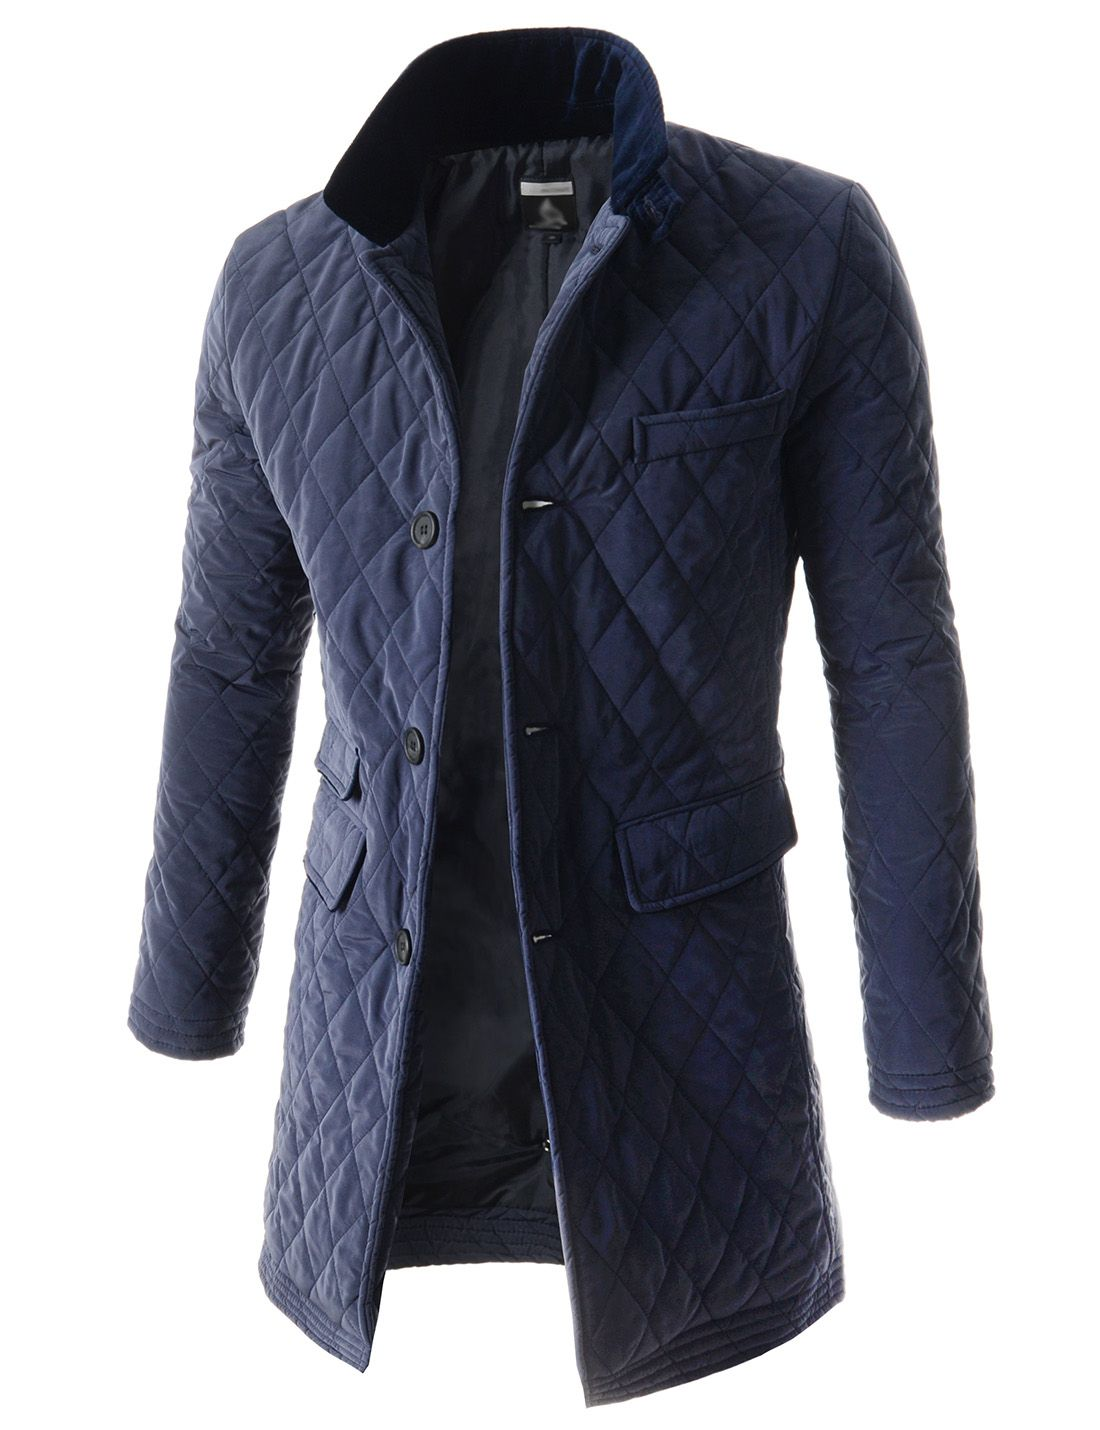 Theleesshop All Mens Slim Luxury Items Blazers For Men Casual Quilted Jacket Men Mens Street Style [ 1430 x 1100 Pixel ]